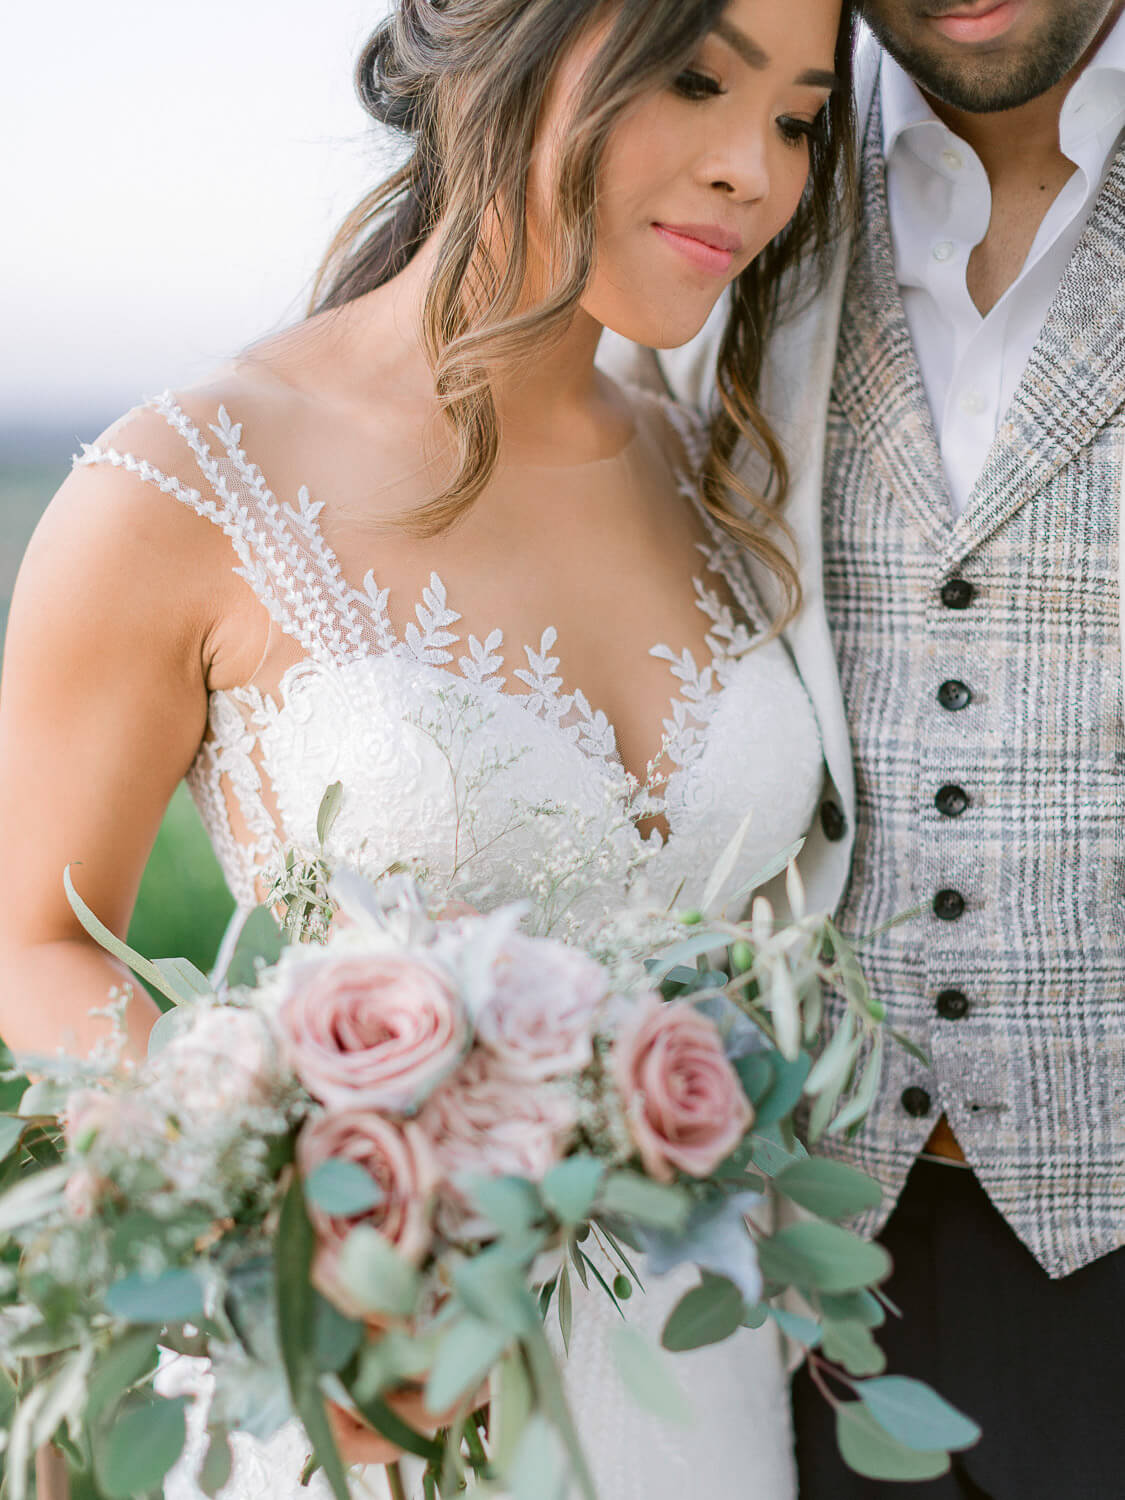 bride's close-up portrait with bouquet and gown details by Portugal Wedding Photographer